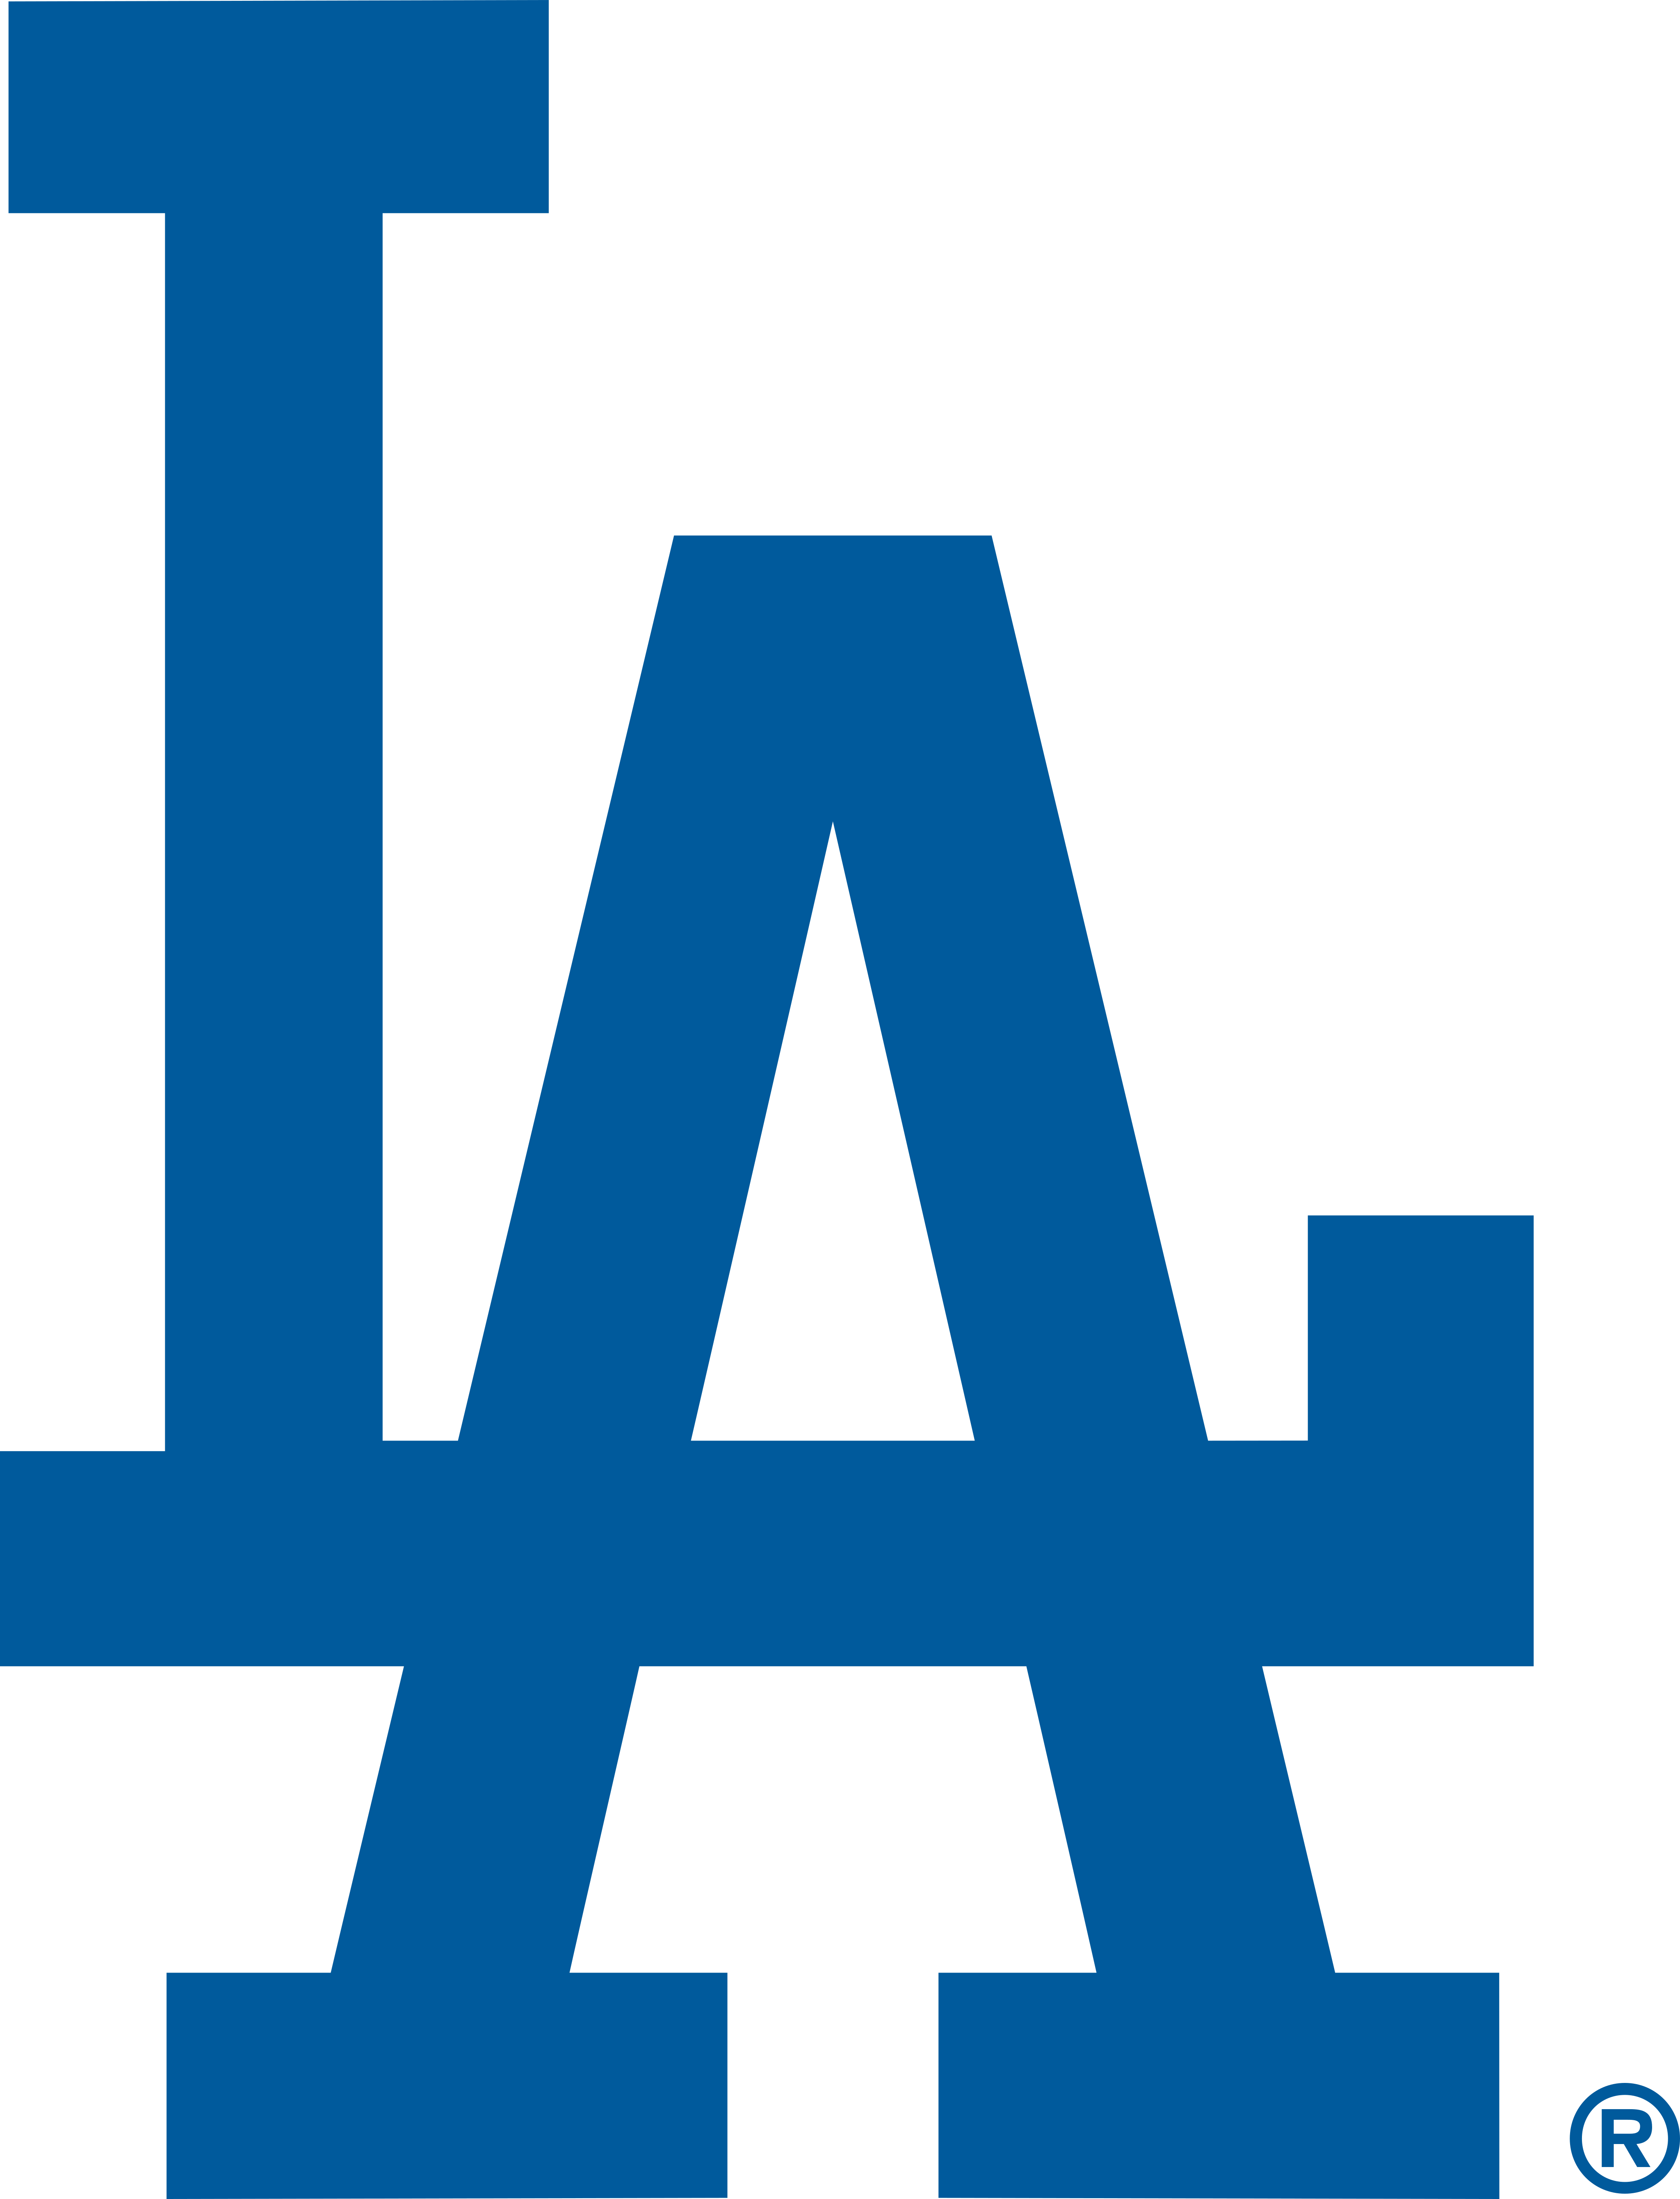 Los Angeles Dodgers Logo.